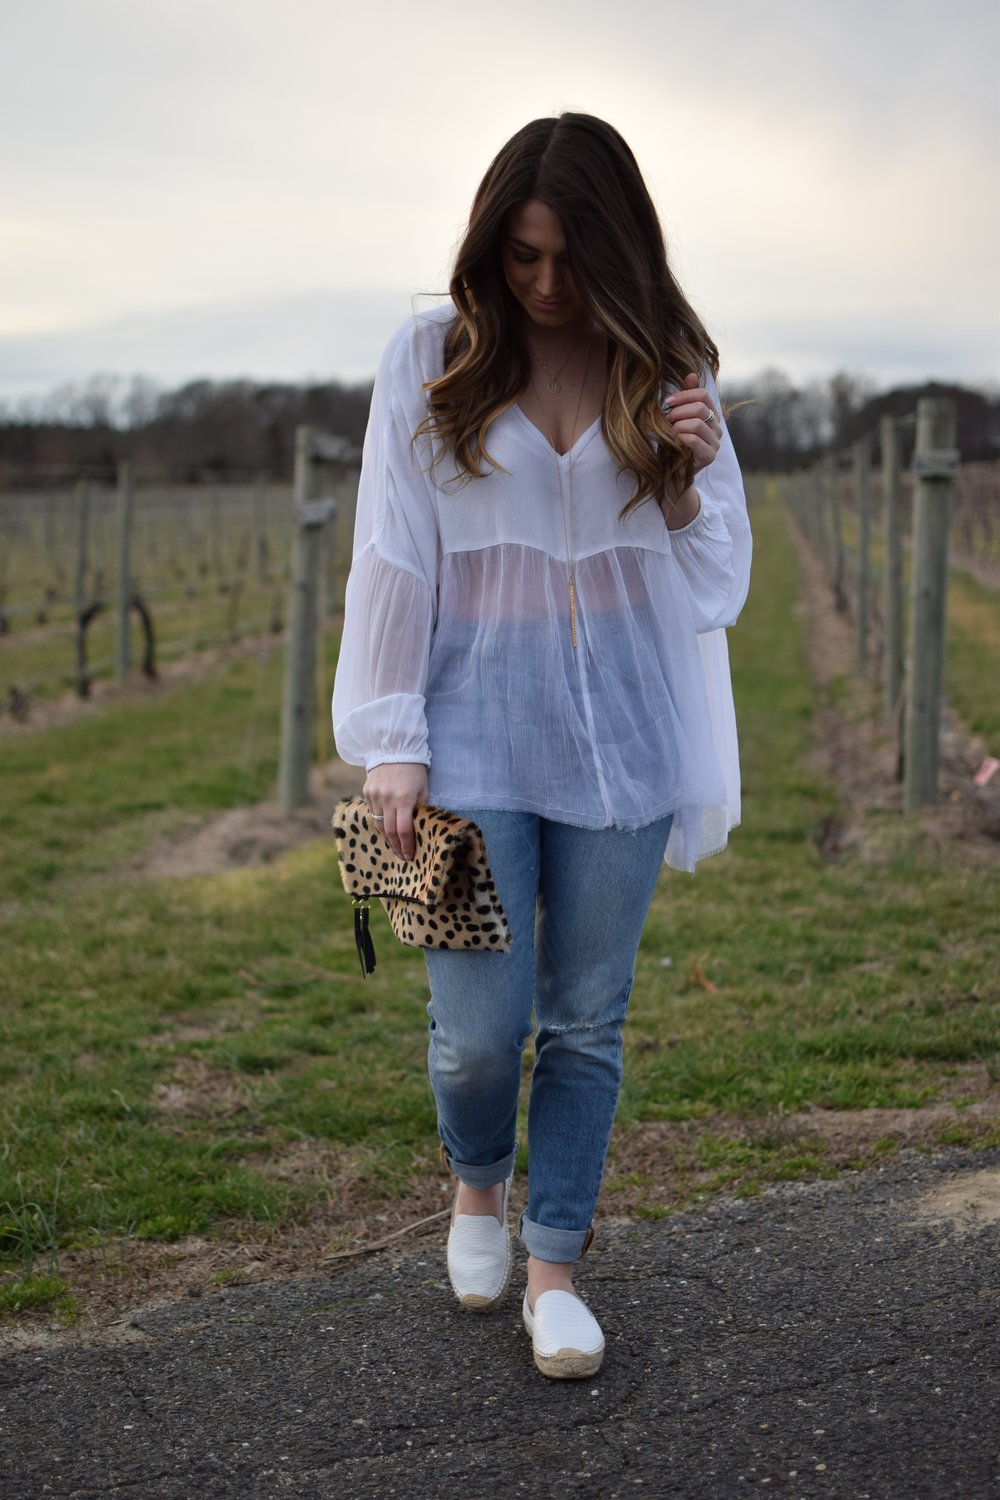 spring outfit idea / flowy white top